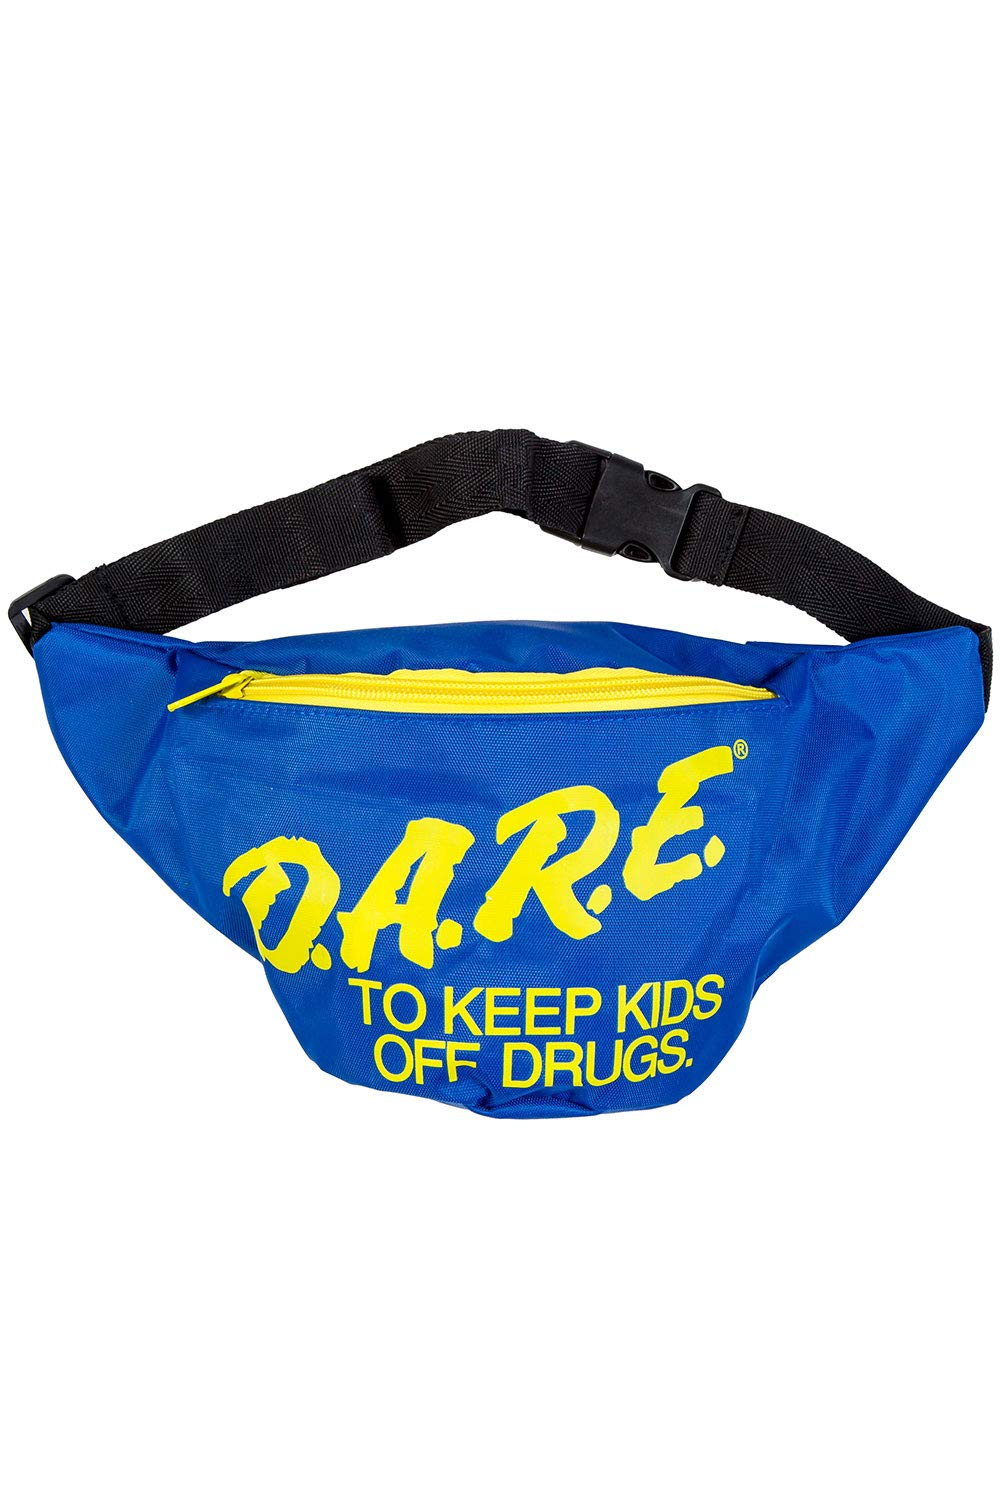 46a0a70f8b188 Neon Retro DARE Fanny Pack Waist Bags with Adjustable Waist Straps (Neon  Blue)